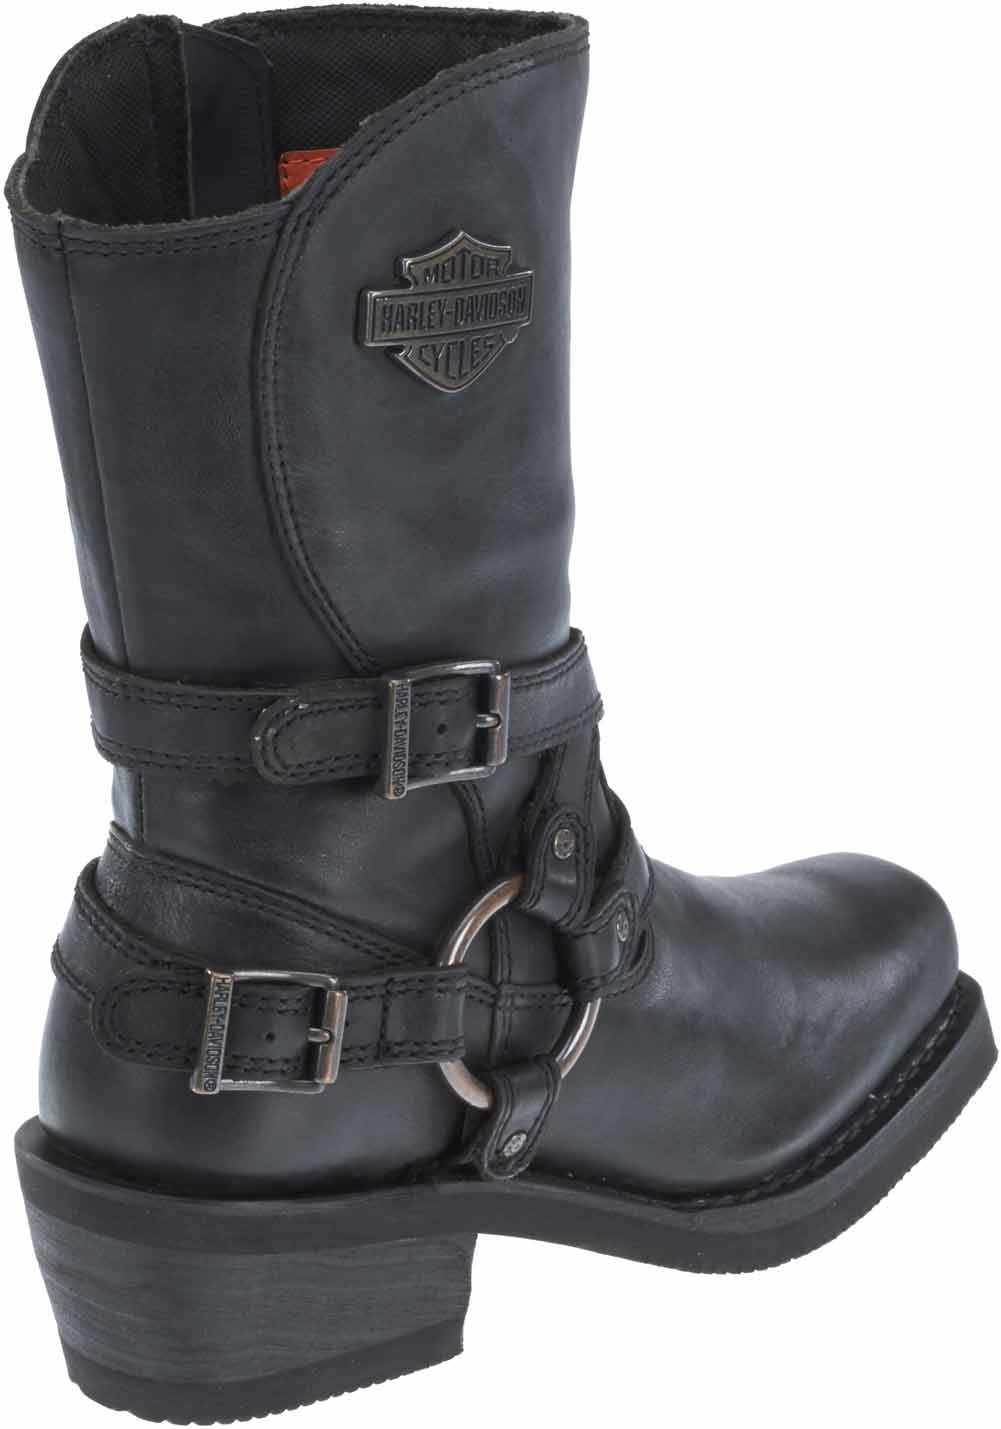 Harley Davidson Women S Ingleside 8 5 Motorcycle Boots Black Or